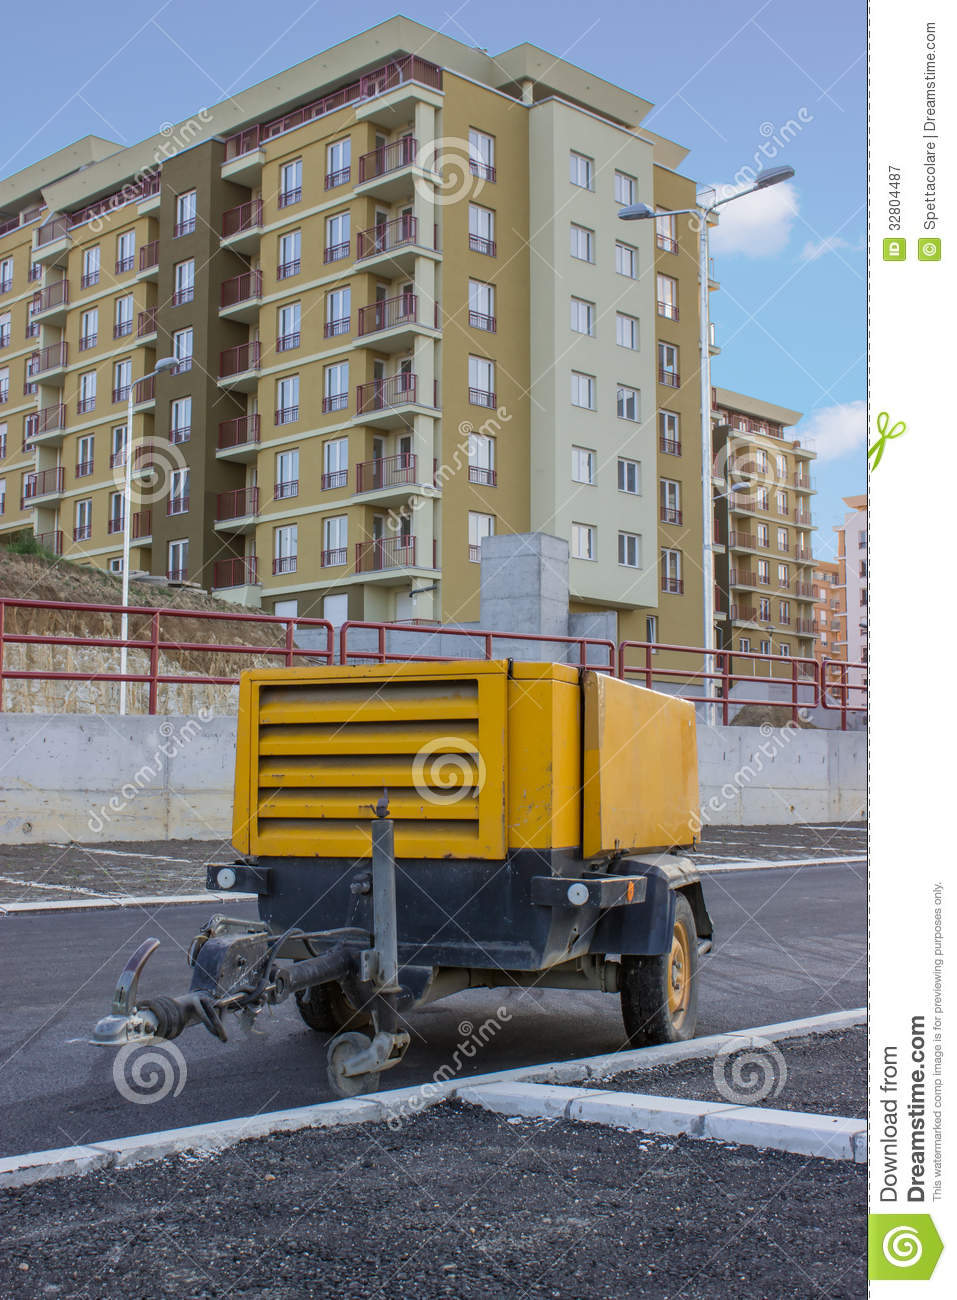 Diesel Generator Room Design: Diesel Portable Compressor Royalty Free Stock Photography